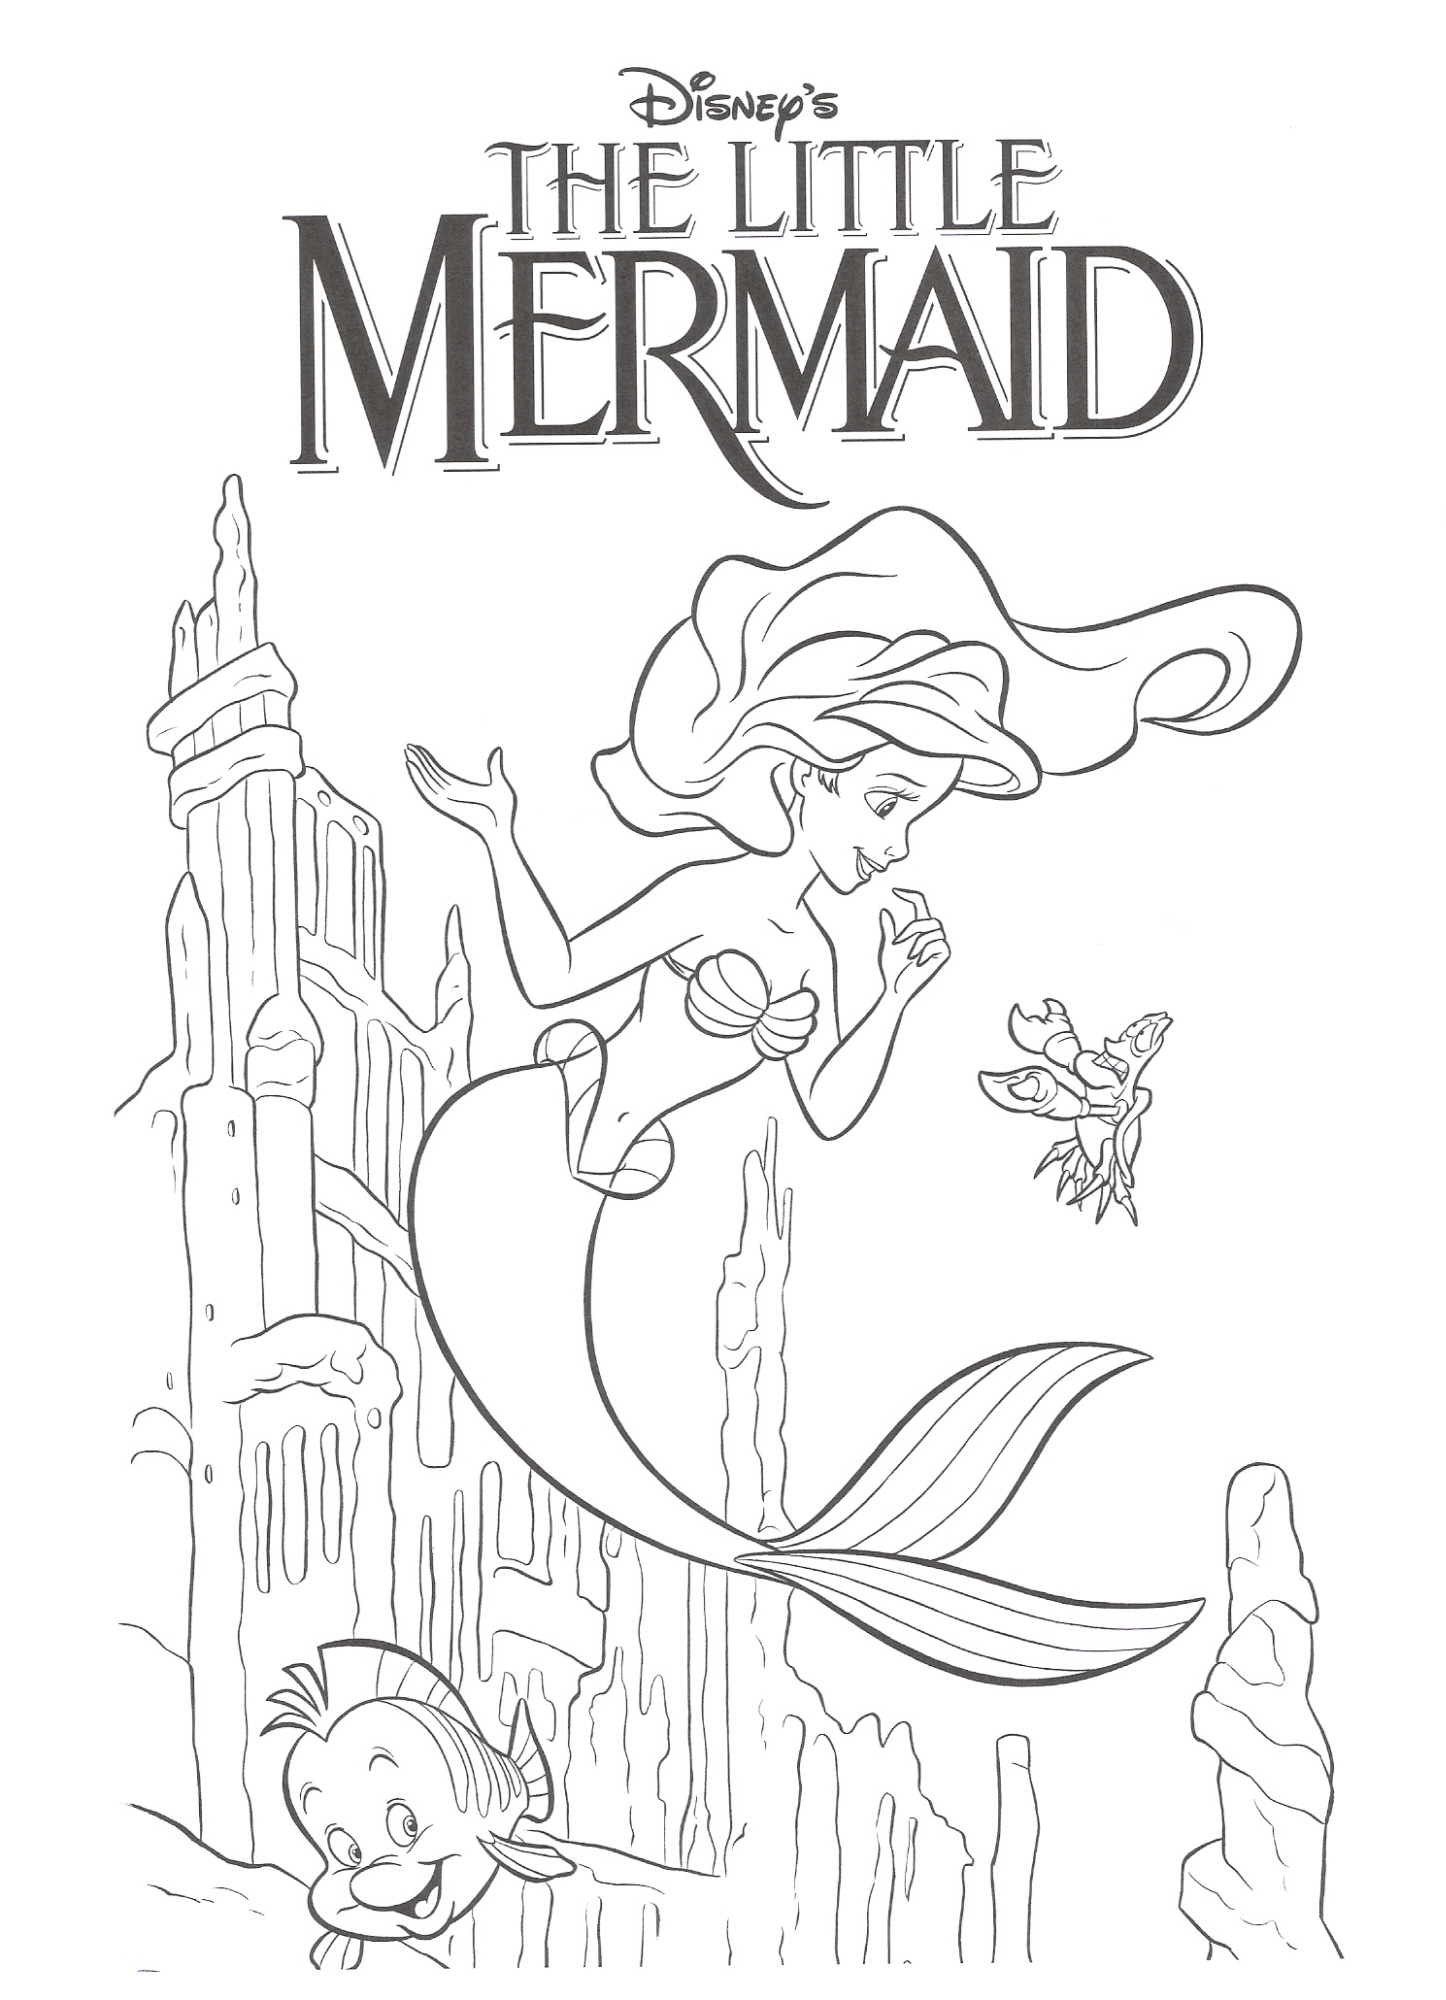 Little mermaid disney ariel coloring pages - Download The Little Mermaid Coloring Pages9